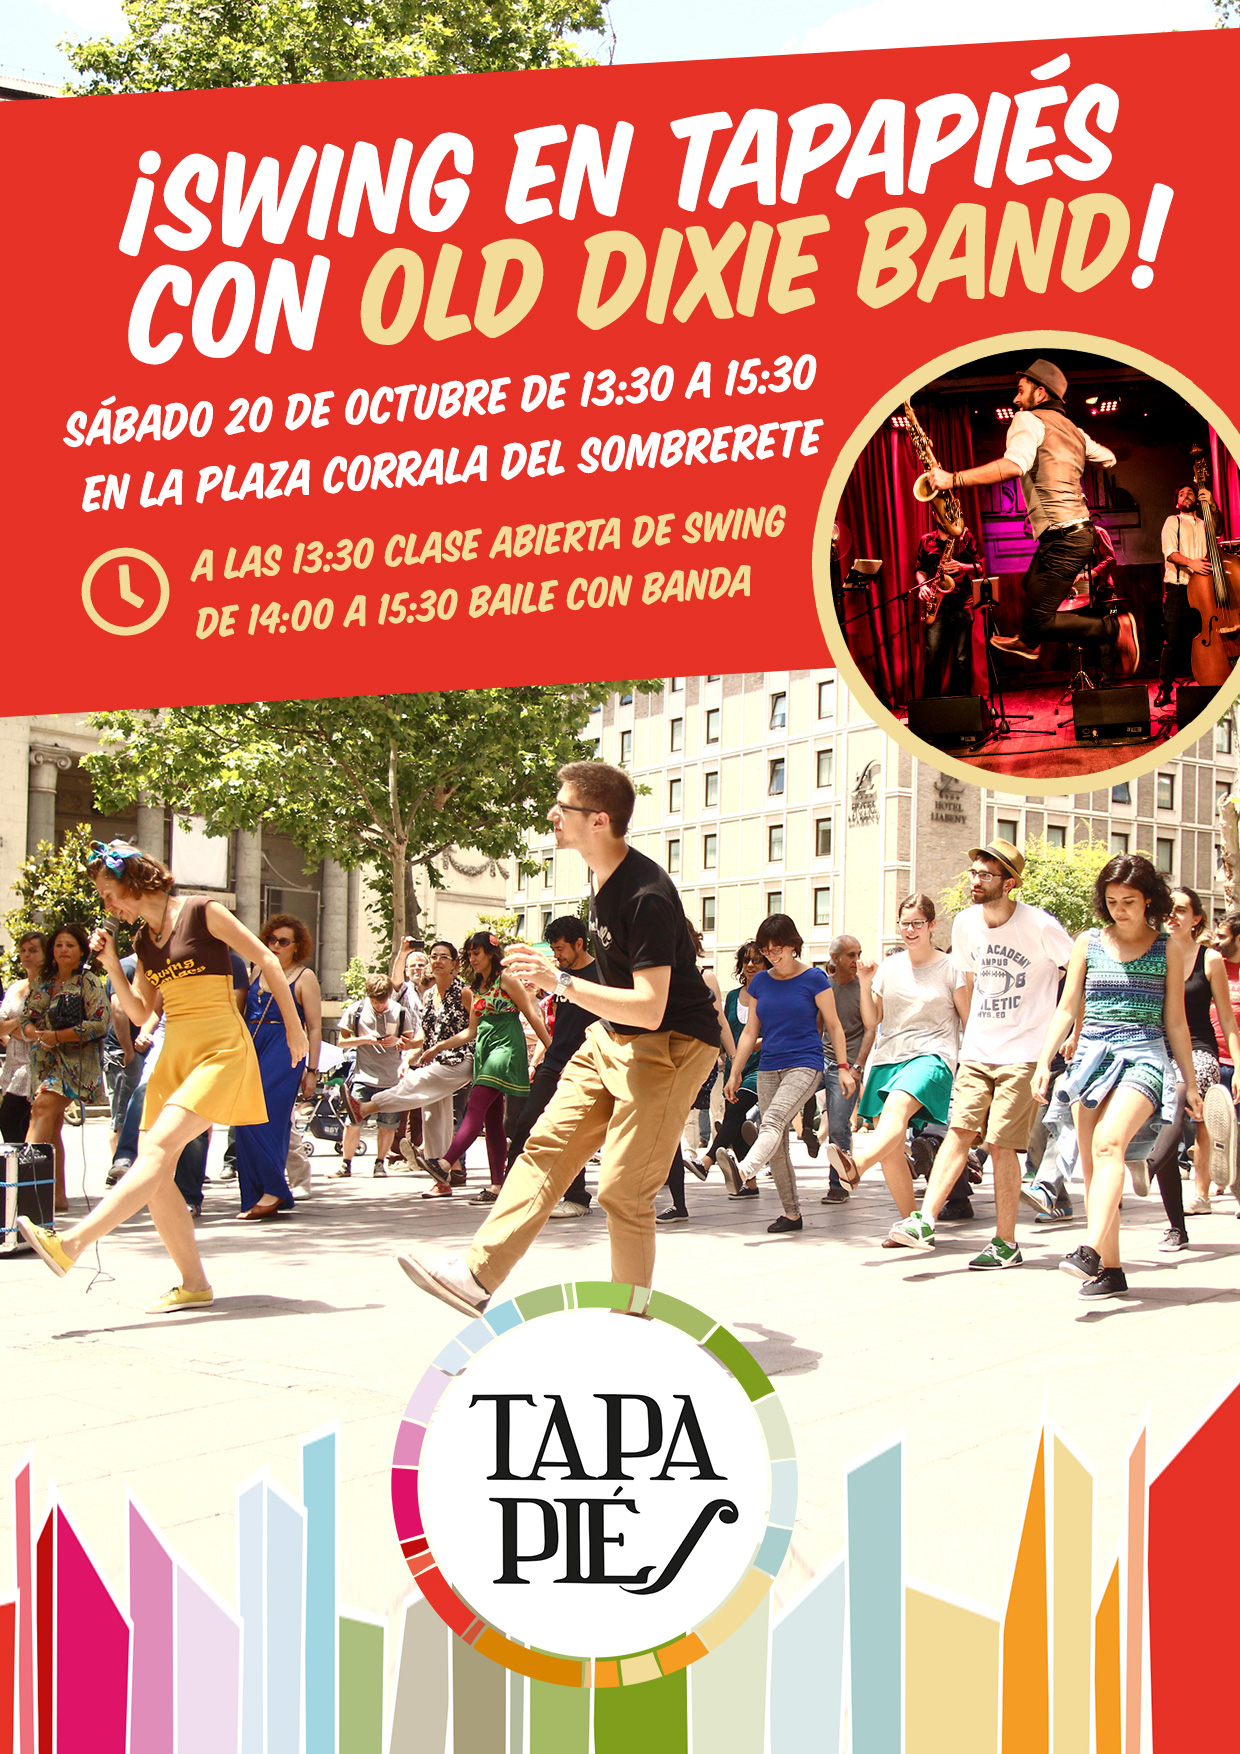 ¡Swing en Tapapiés con Old Dixie Band!